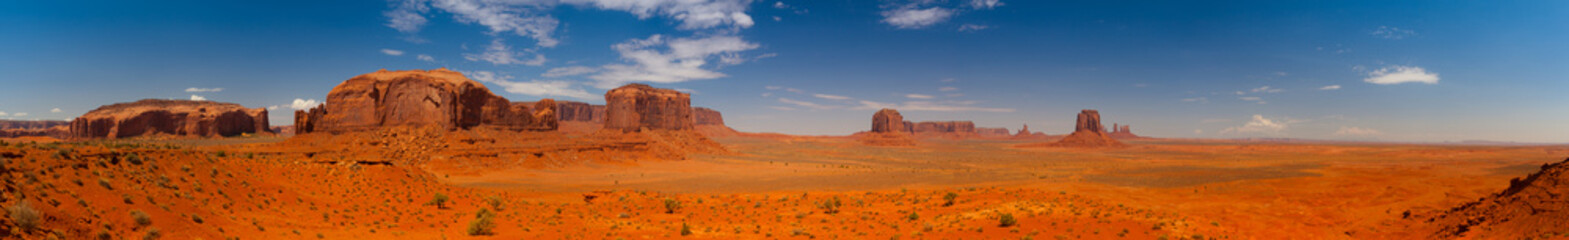 Iconic peaks of rock formations in the Navajo Park of Monument V